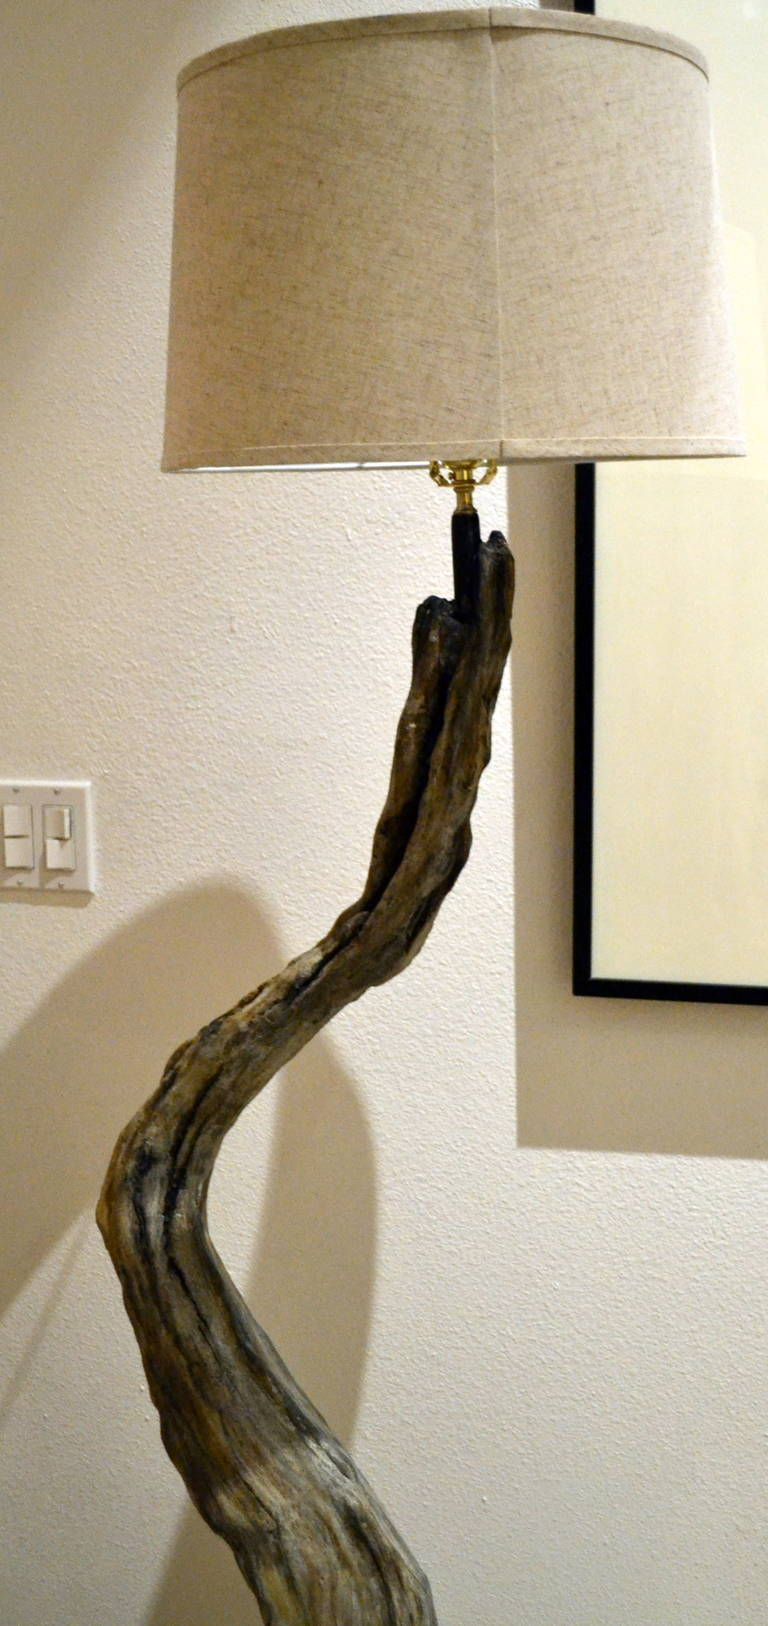 driftwood bright tripod imagination dory top base lamp shades table floor yellow hunky